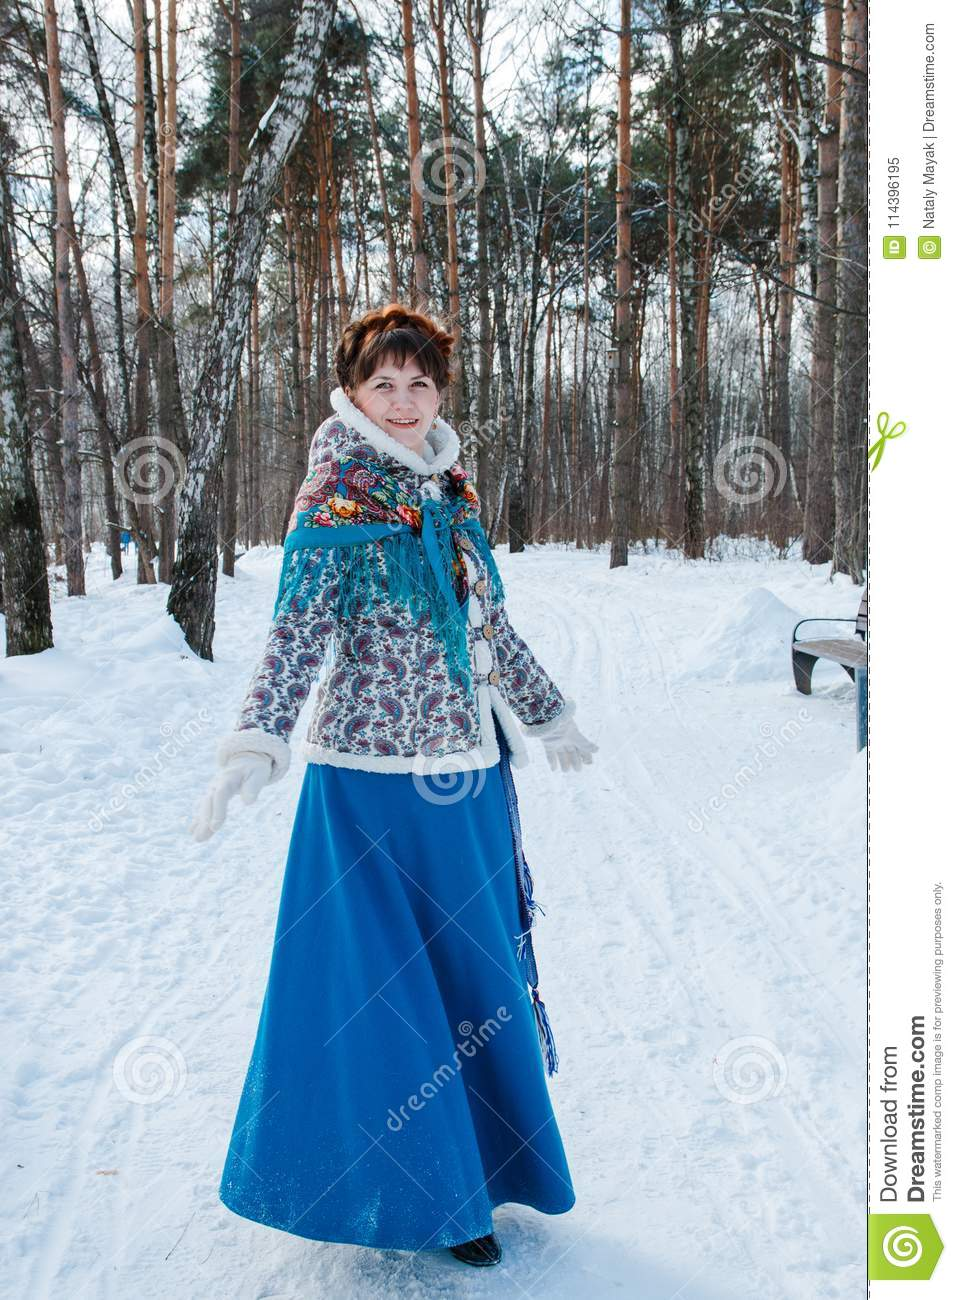 A girl with beautiful hair on her head in a Slavic style in full growth in the winter forest